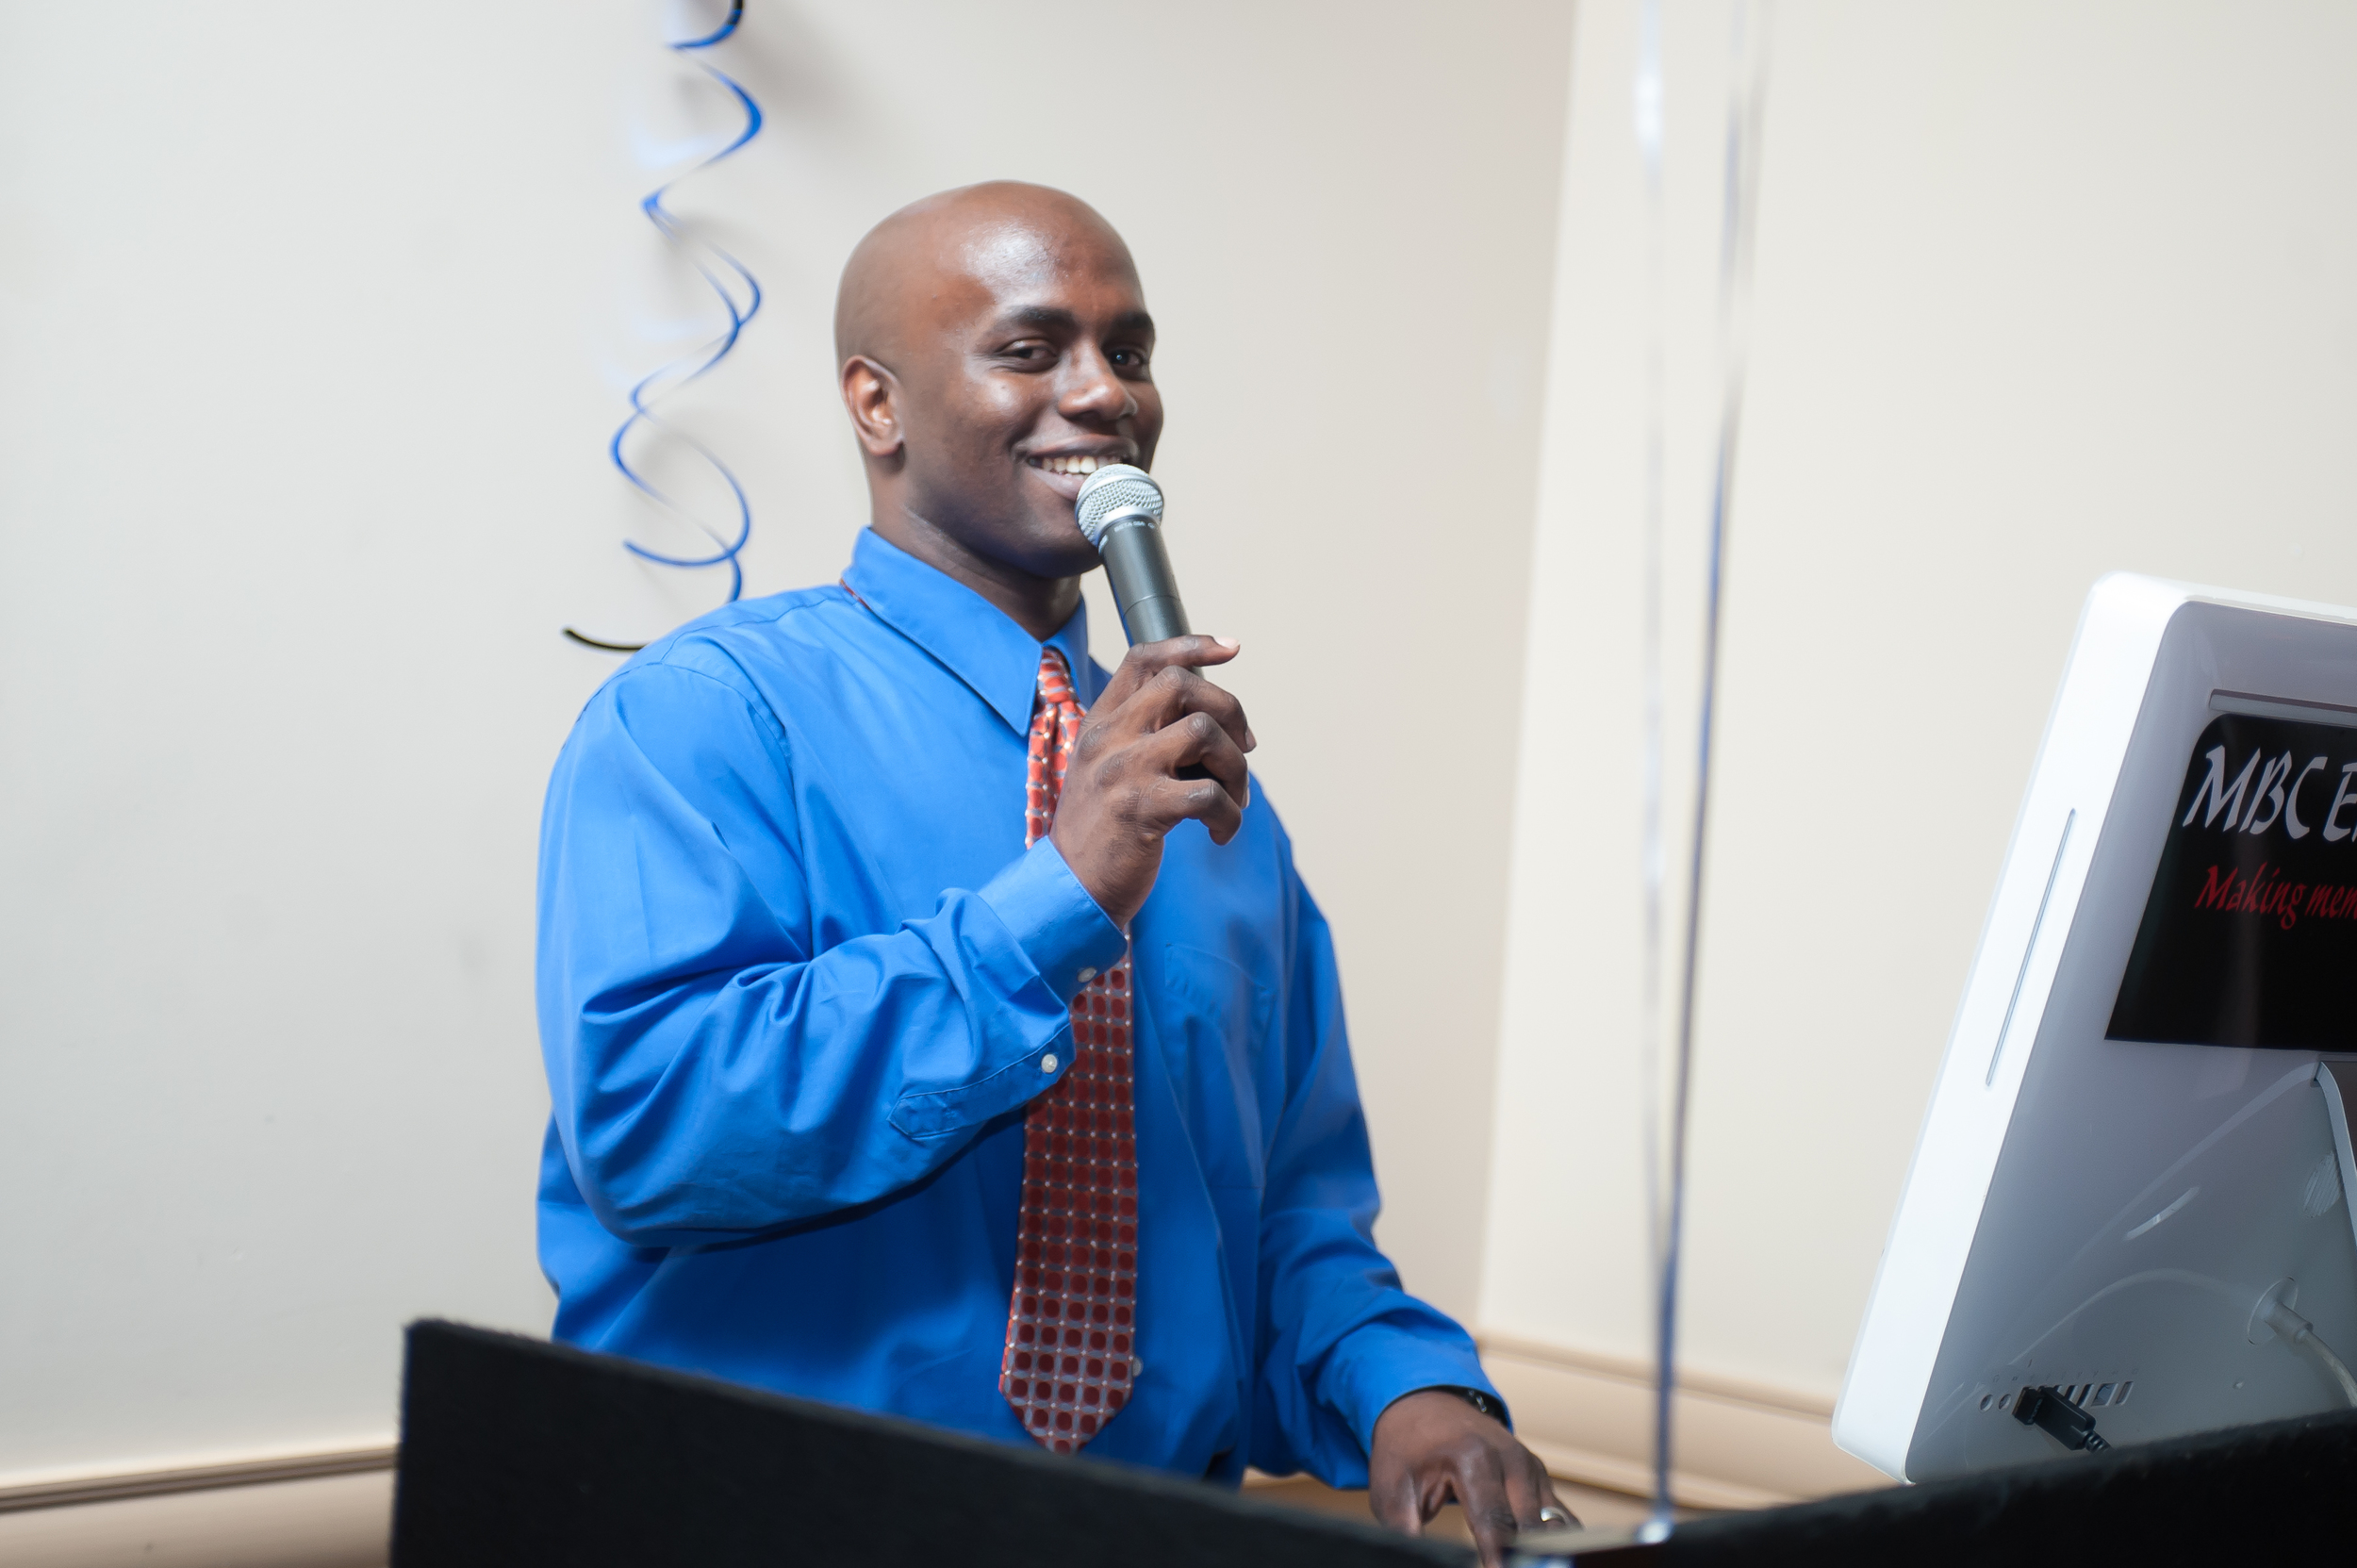 Another amazing Dj I recommend is MBC Entertainment let him know Yolanda Hill Photography sent you https://www.facebook.com/MBC.Entertainment/